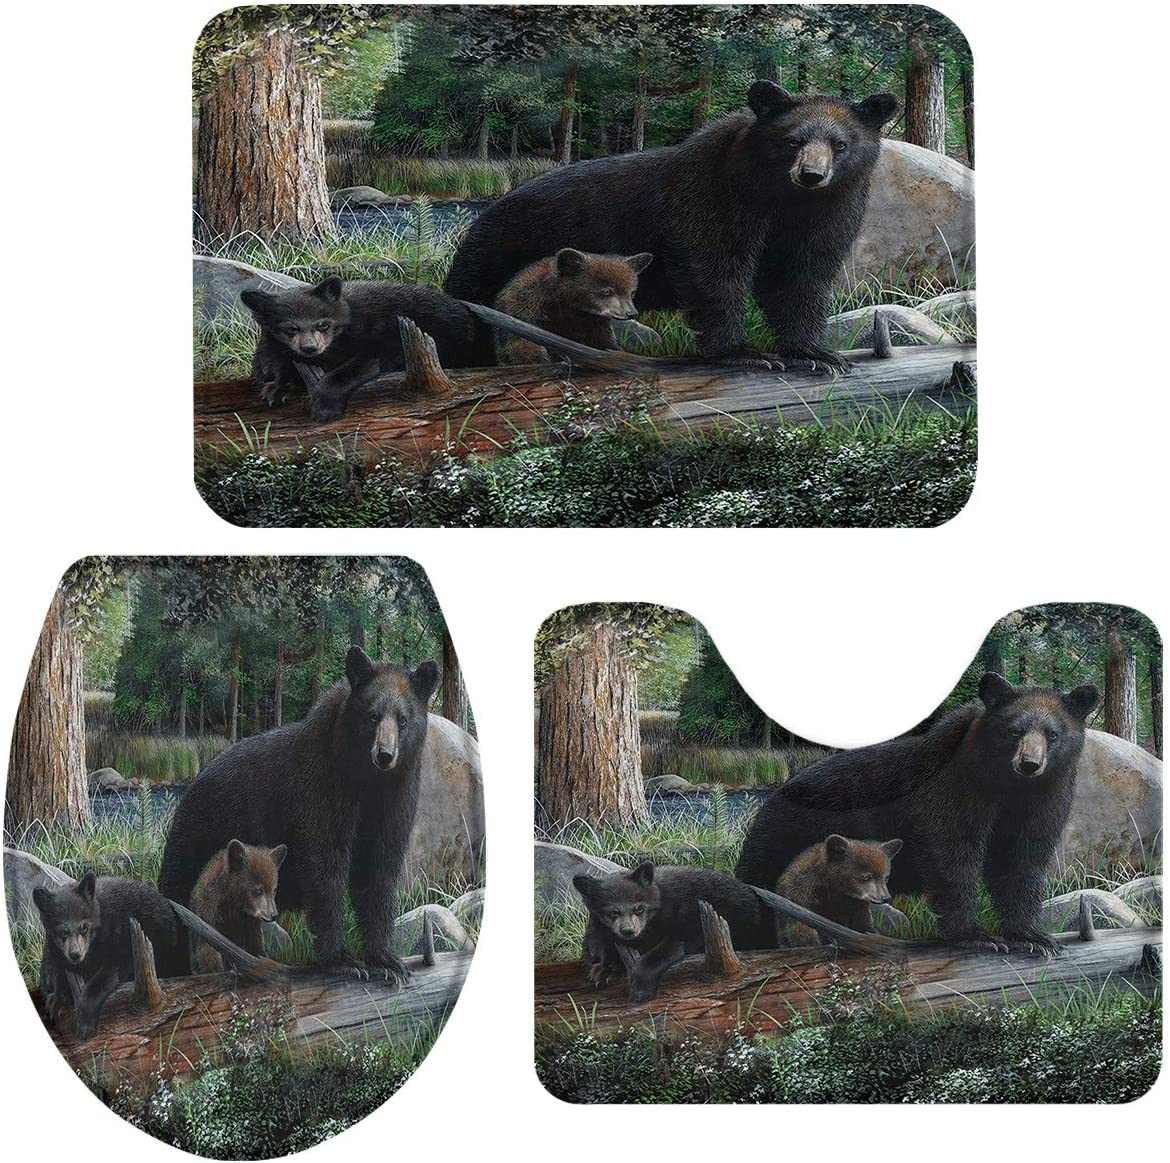 3 Pieces Bathroom Rug Set Rustic Jacksonville Mall Genuine Free Shipping Bears Cubs Family 20x and Black